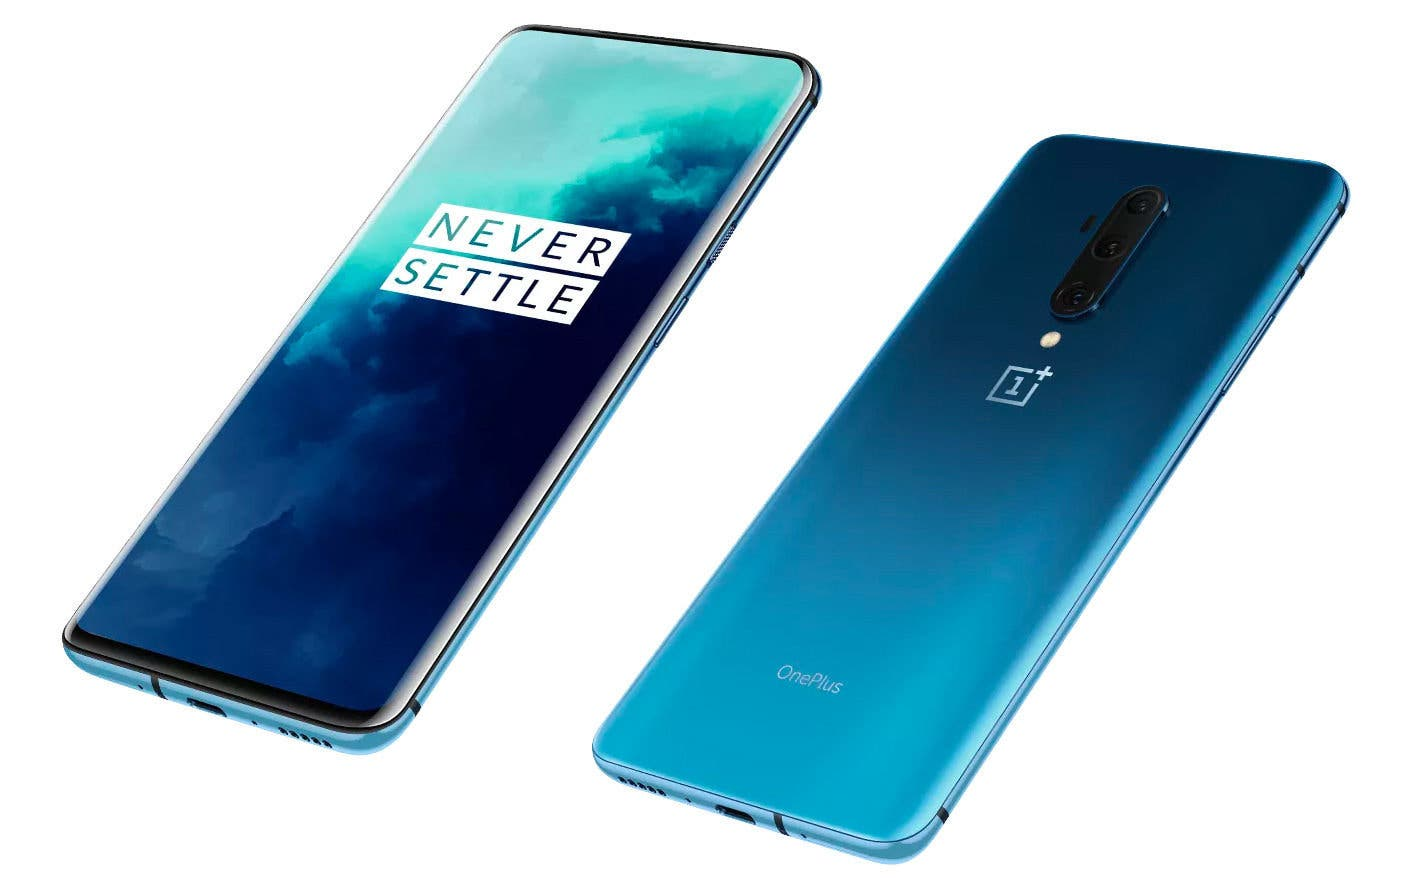 OnePlus 8 Pro may come with super smooth 120Hz display